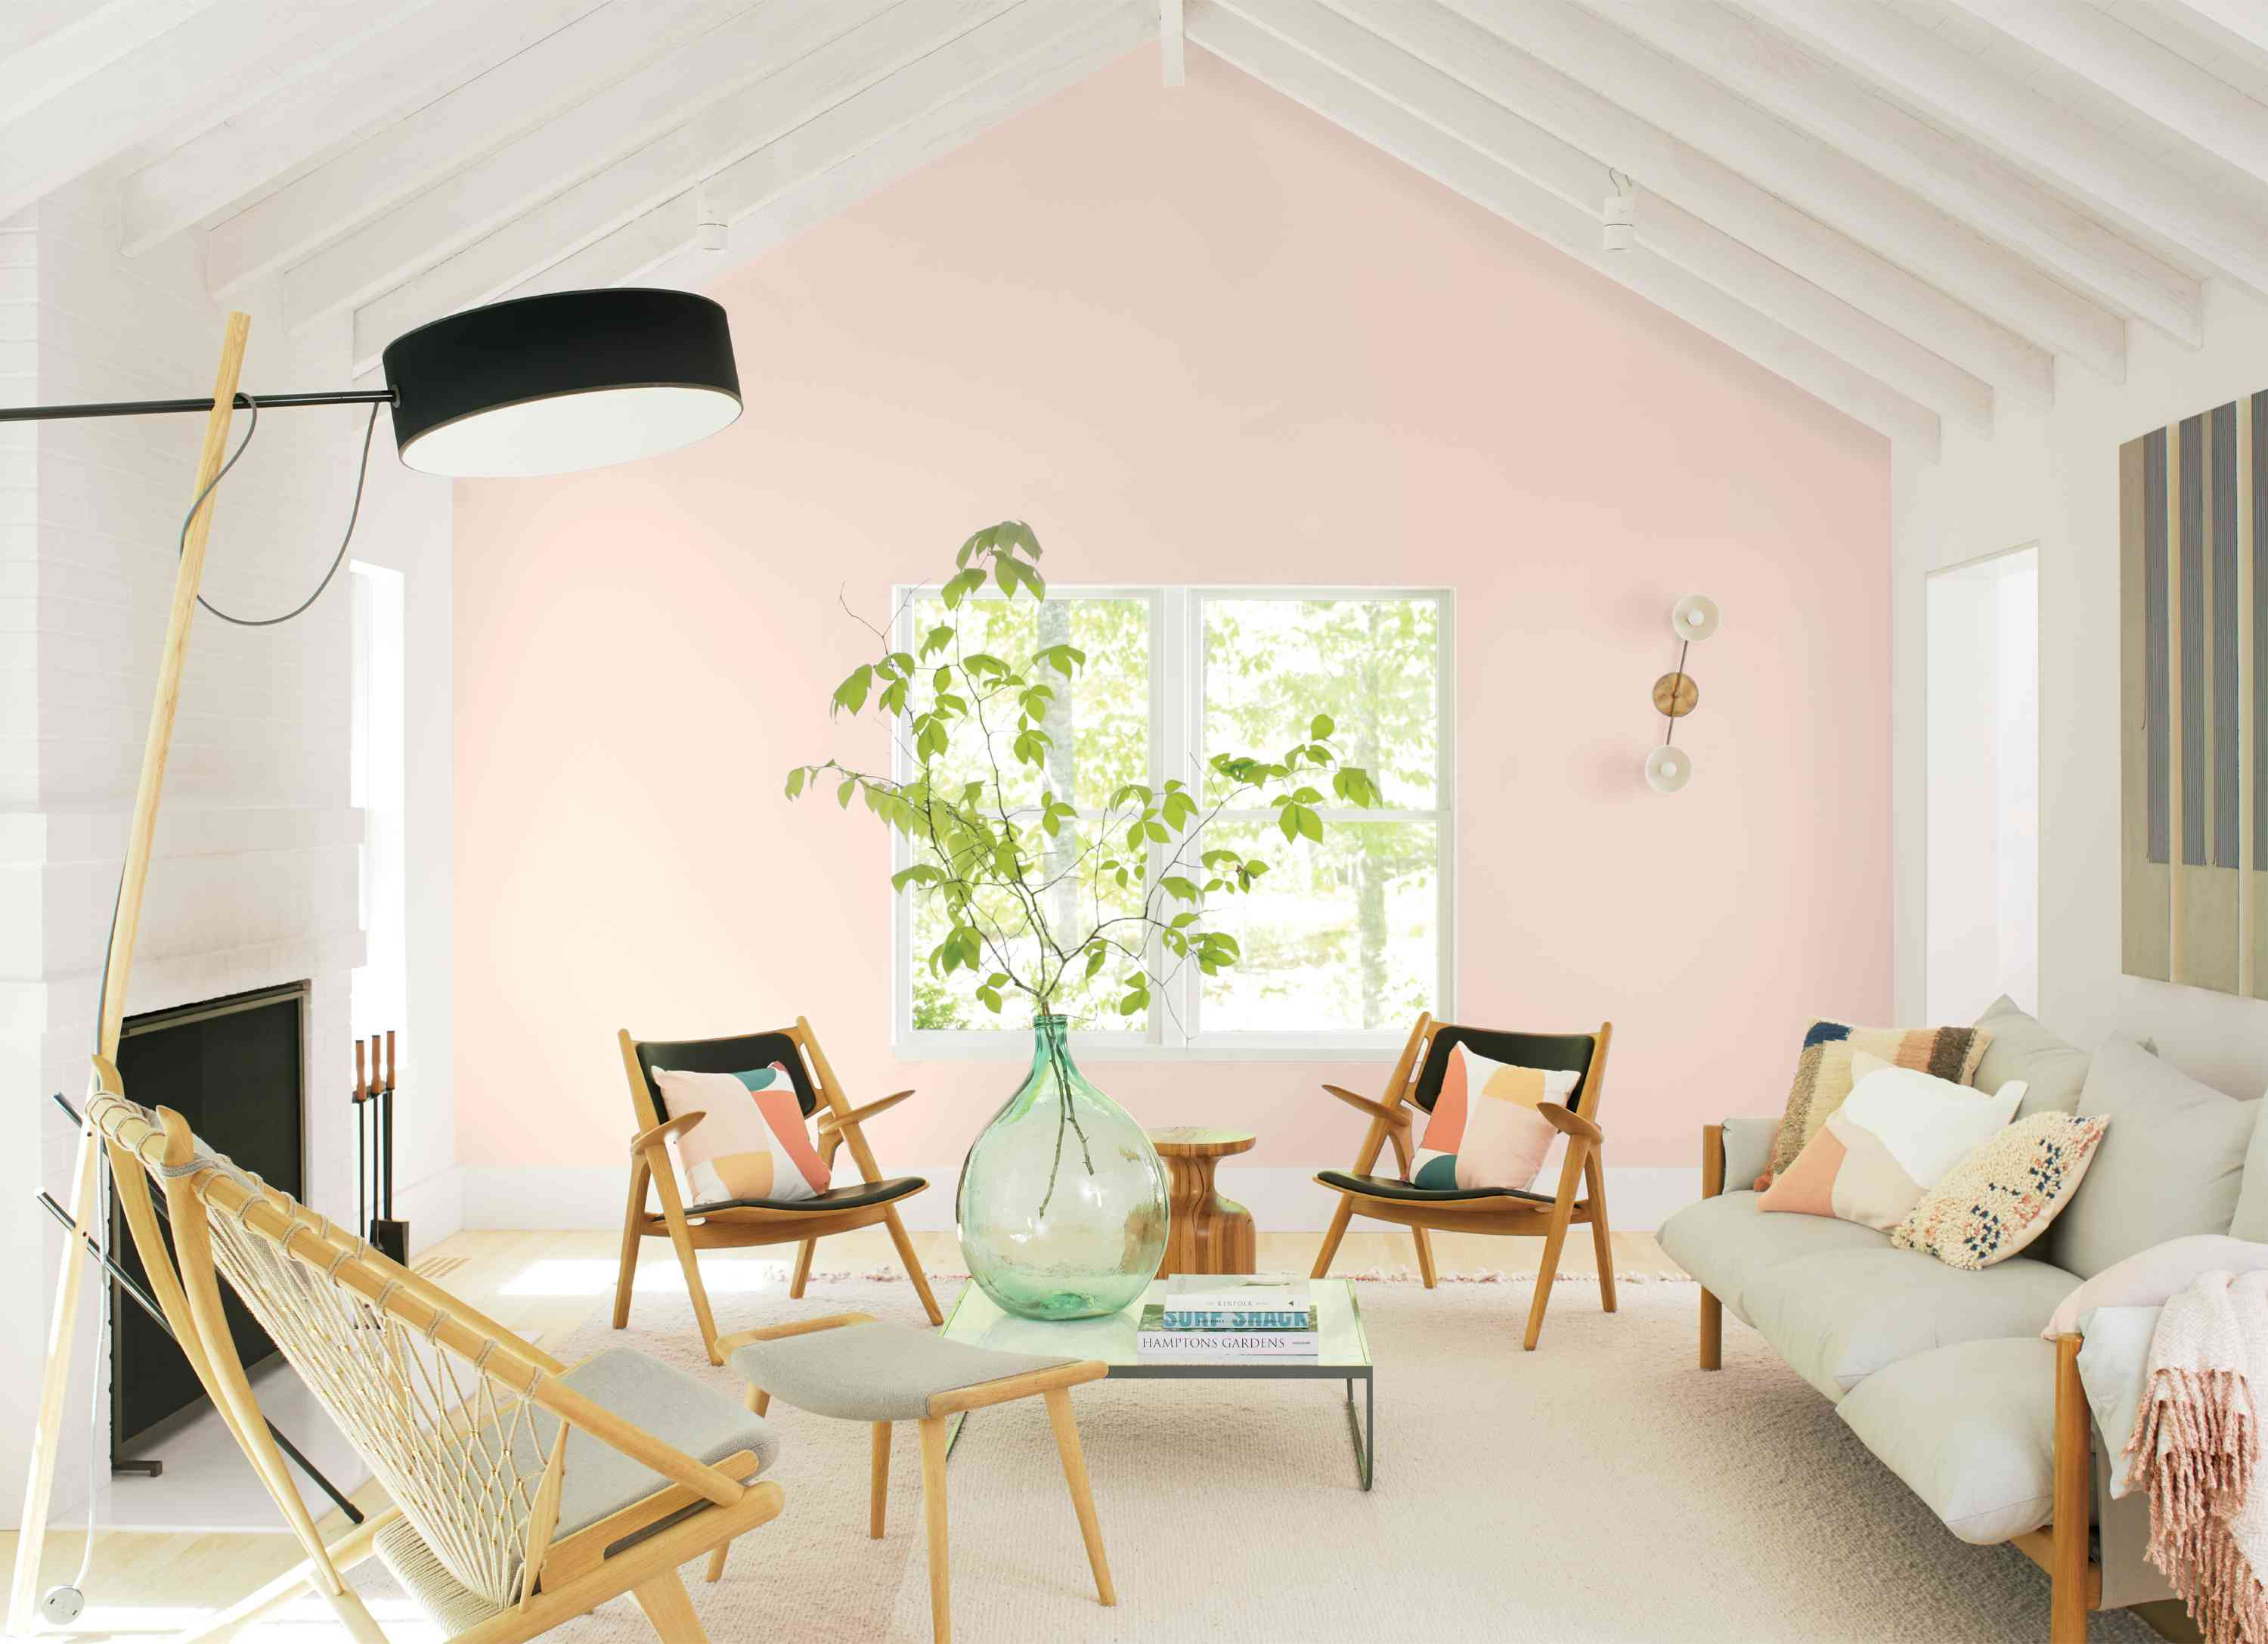 Benjamin Moore's 2020 Color of the Year is a Fresh Take on Millennial Pink